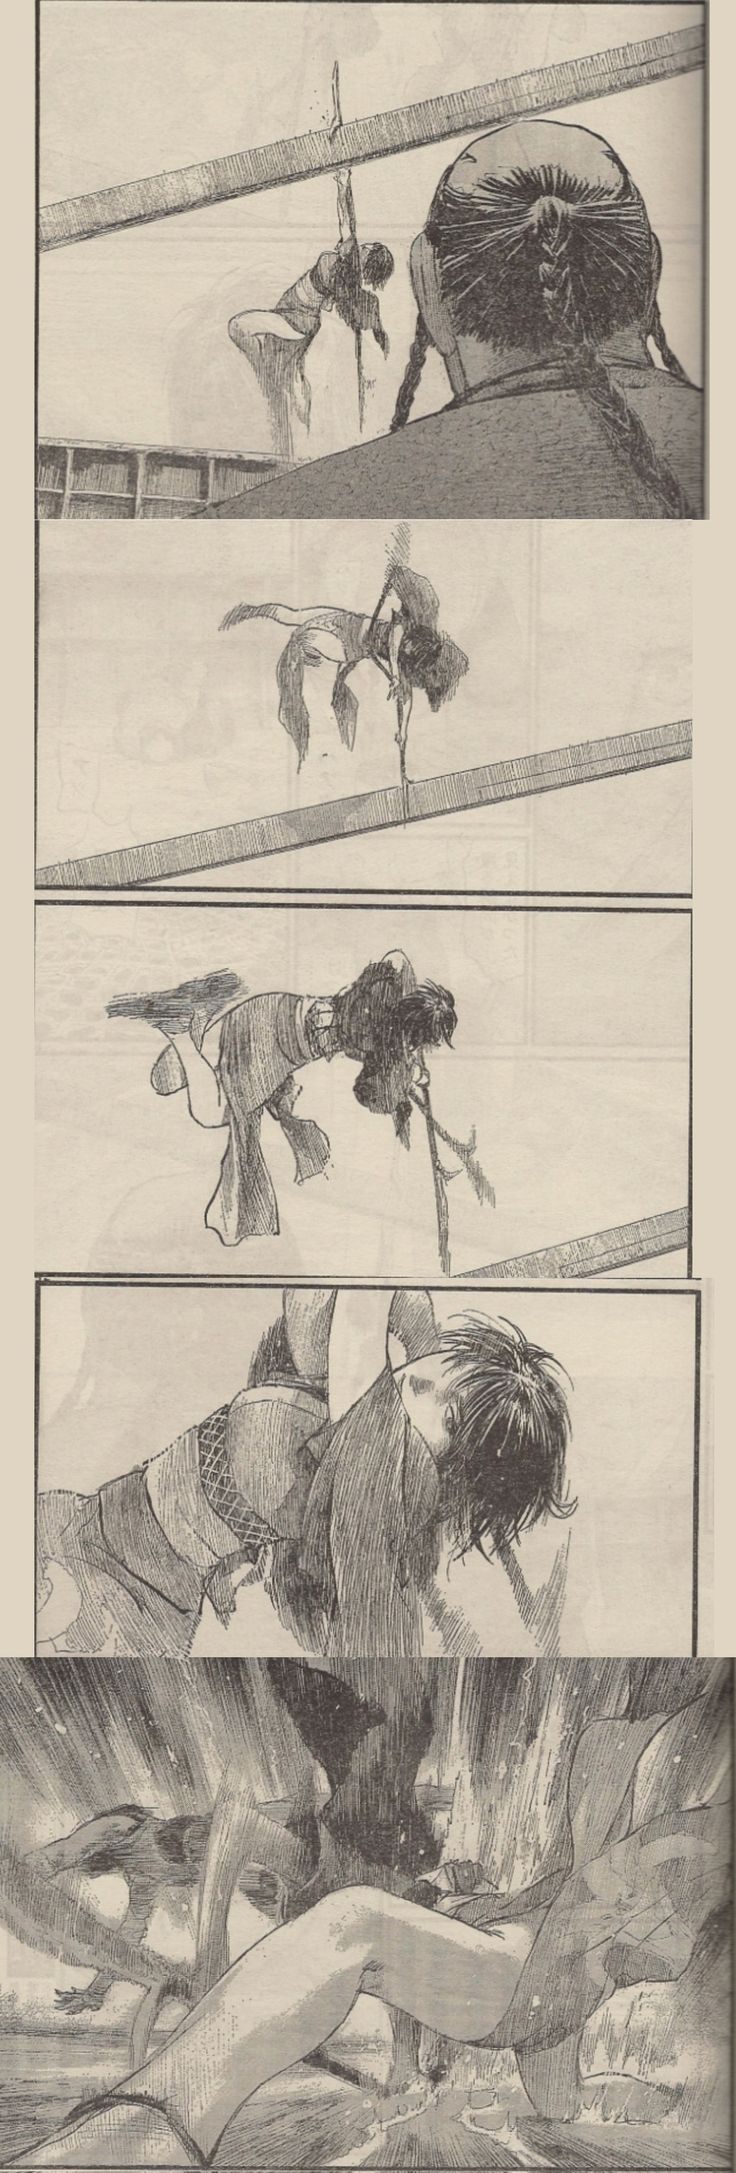 Blade of the immortal, Hiroaki Samura, Makie fight